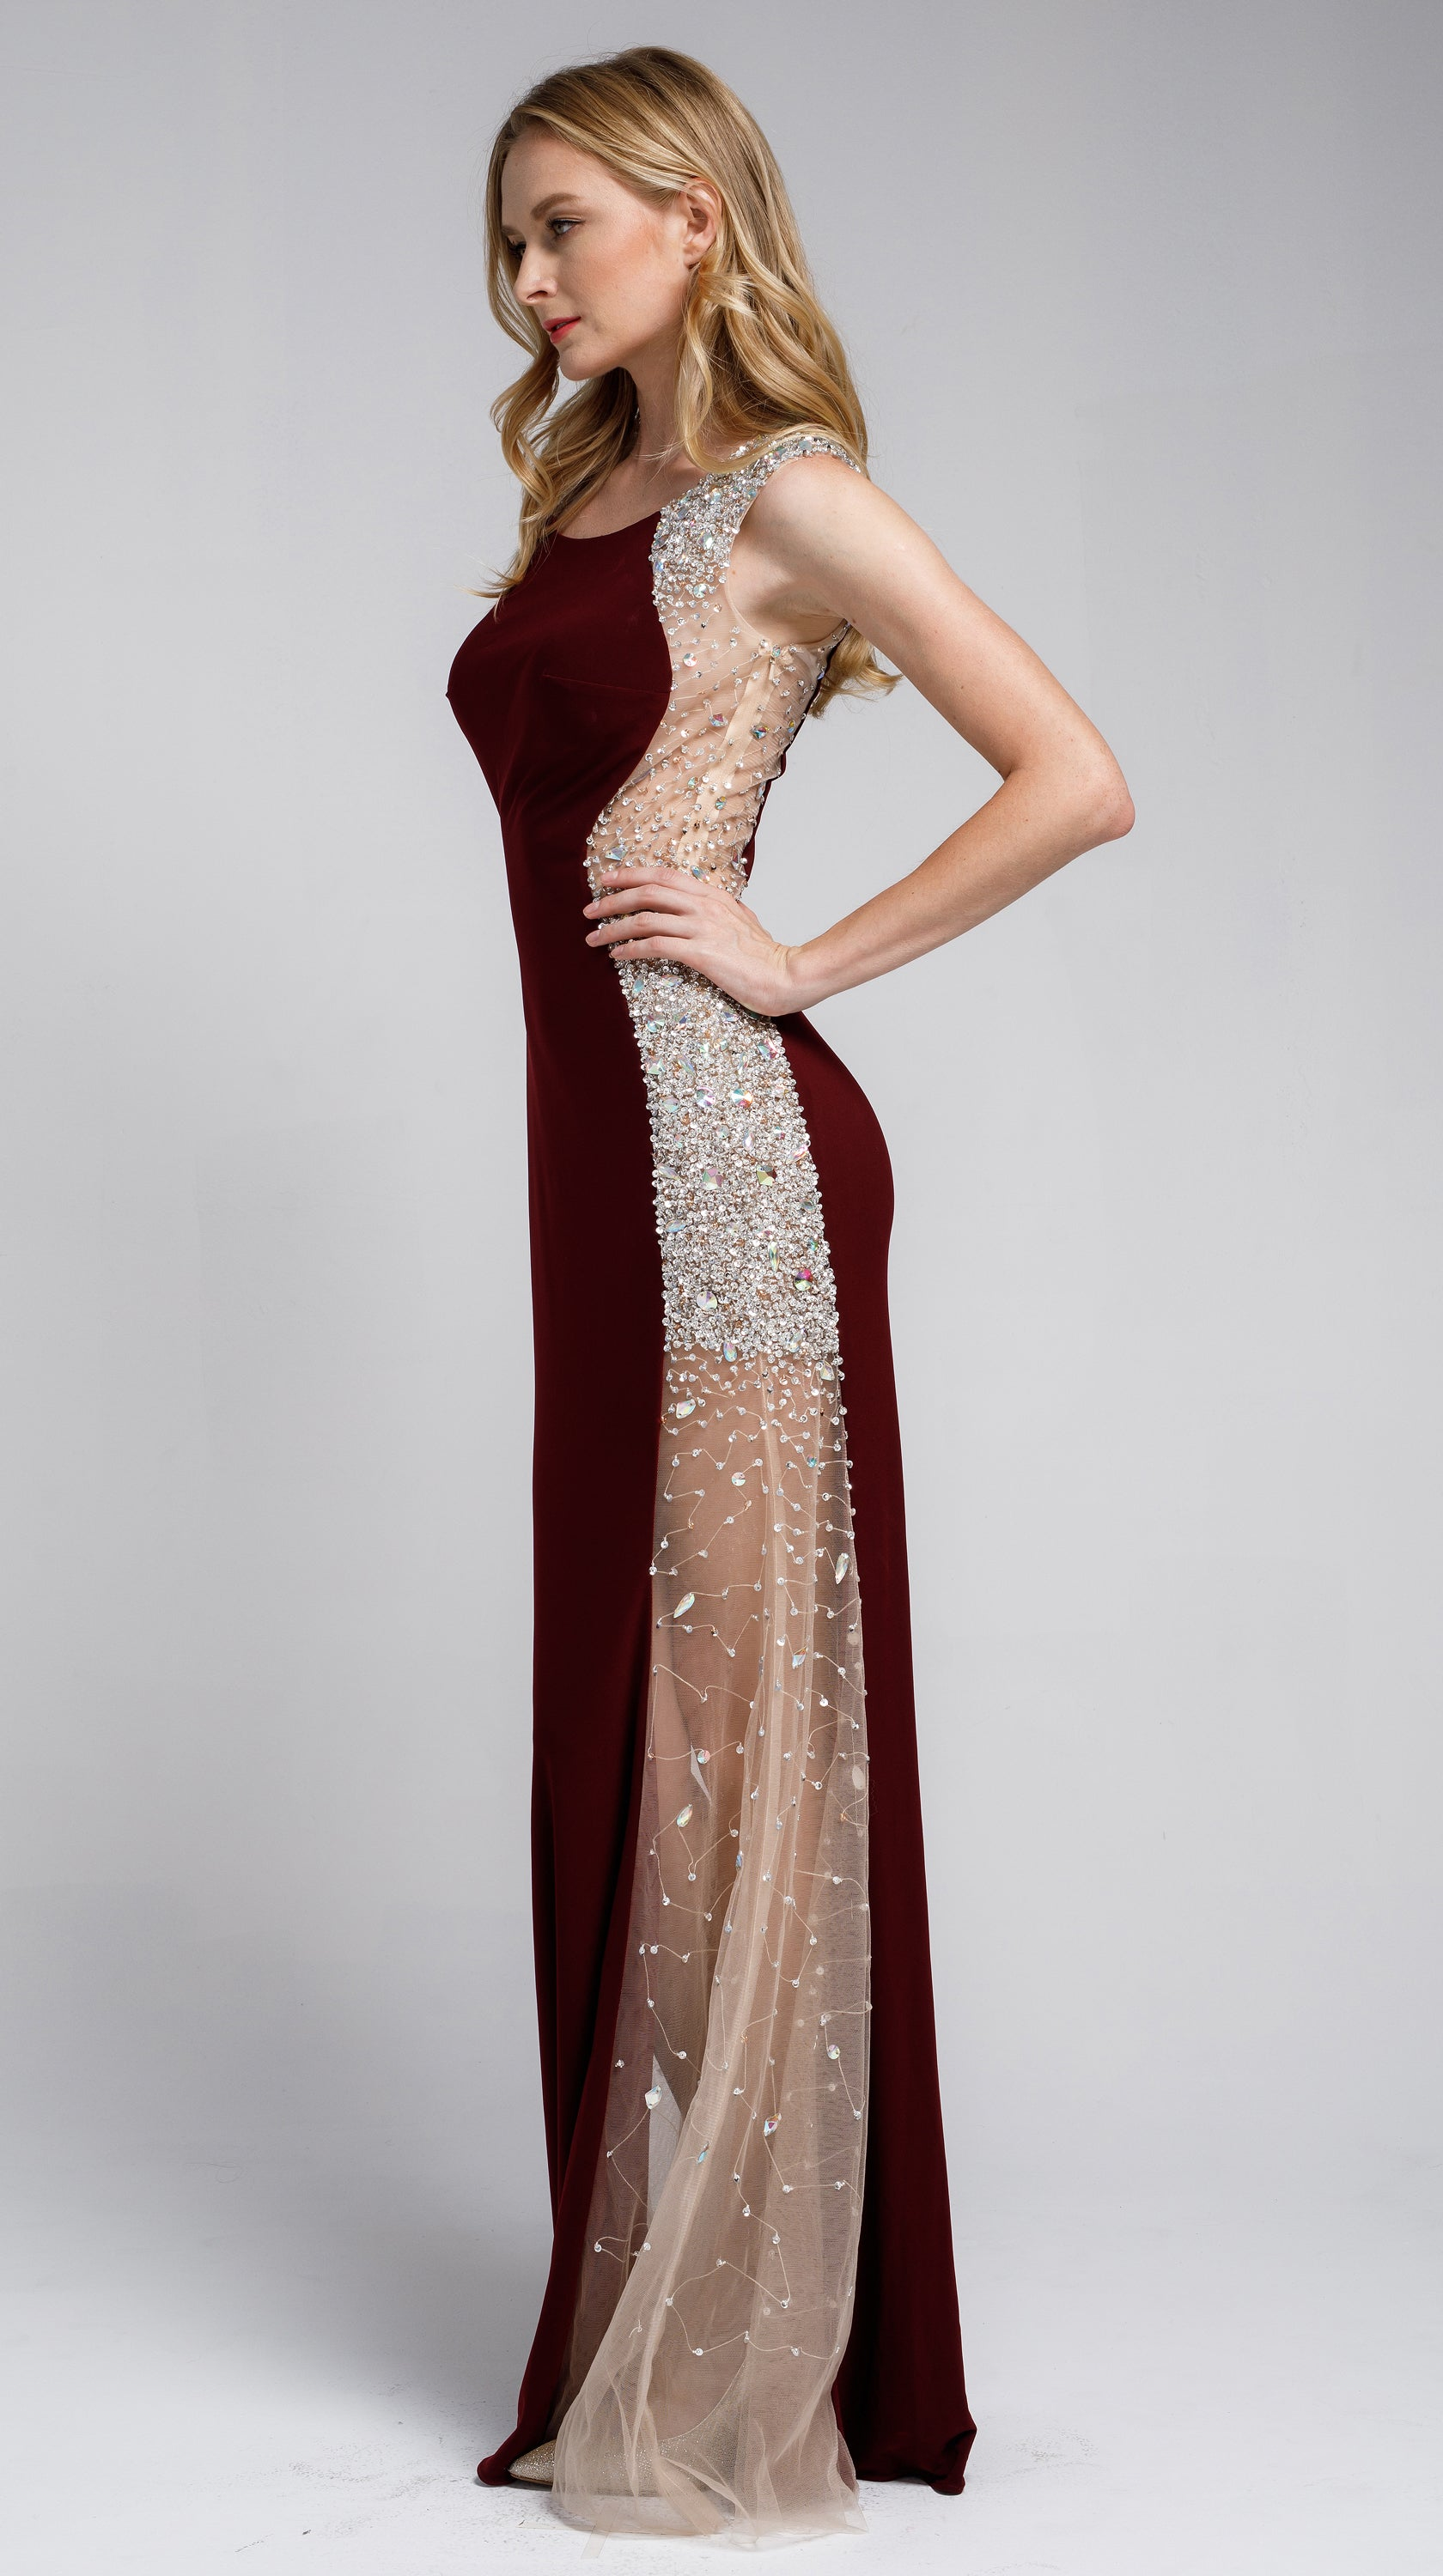 Image of Silhouette Styles Prom Gown With Rhinestone Accents in an alternative image